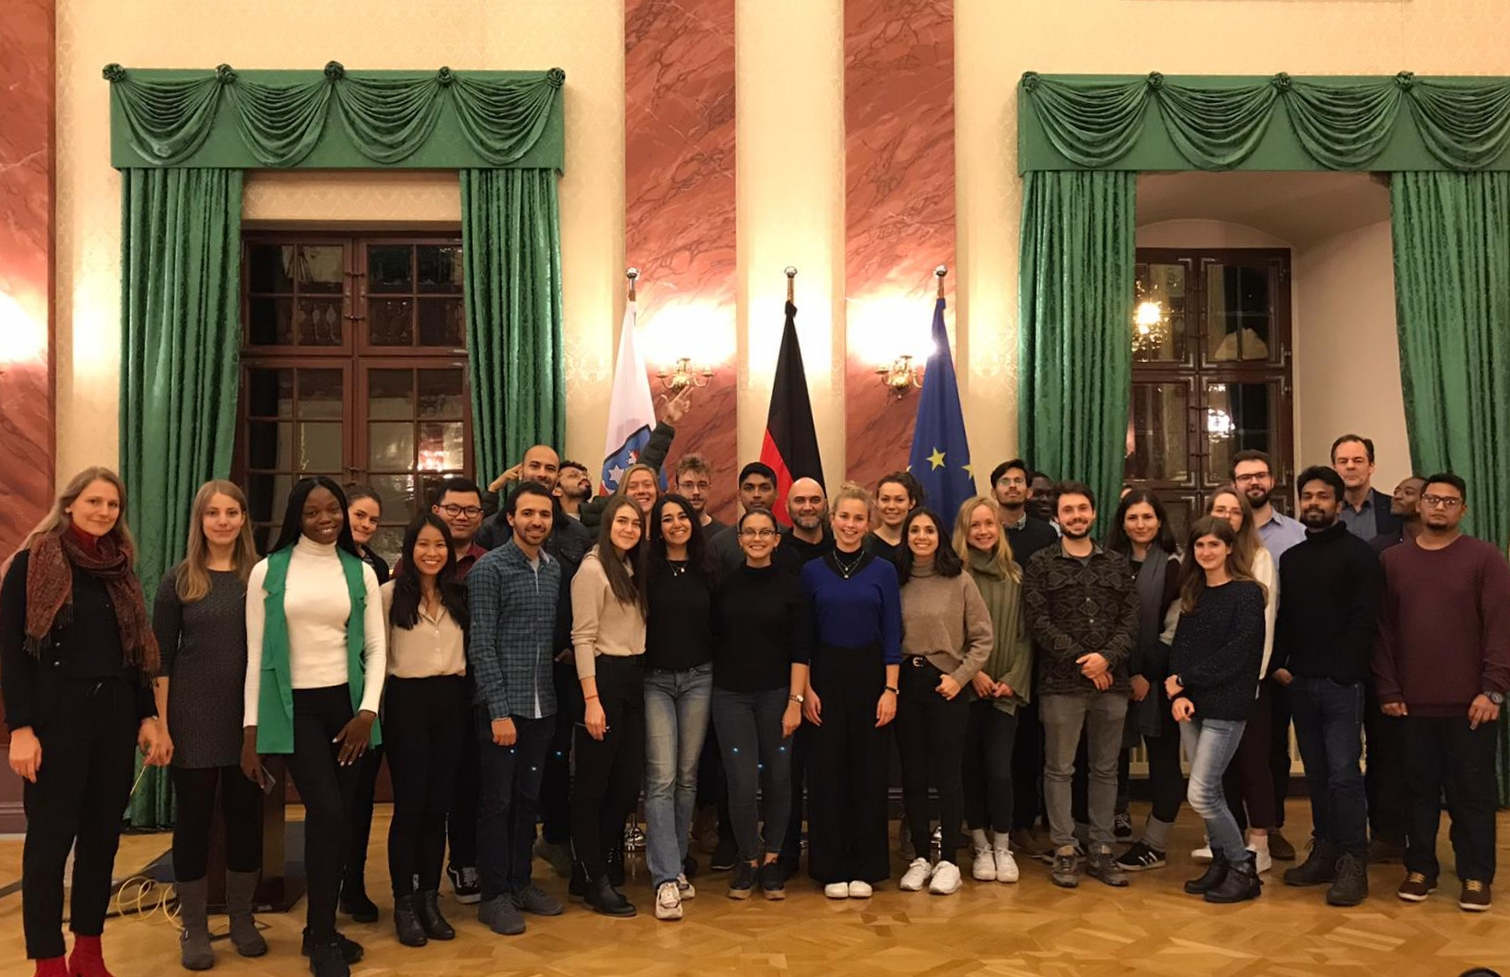 Students of the 2019 Cohort in the Thuringian State Chancellery